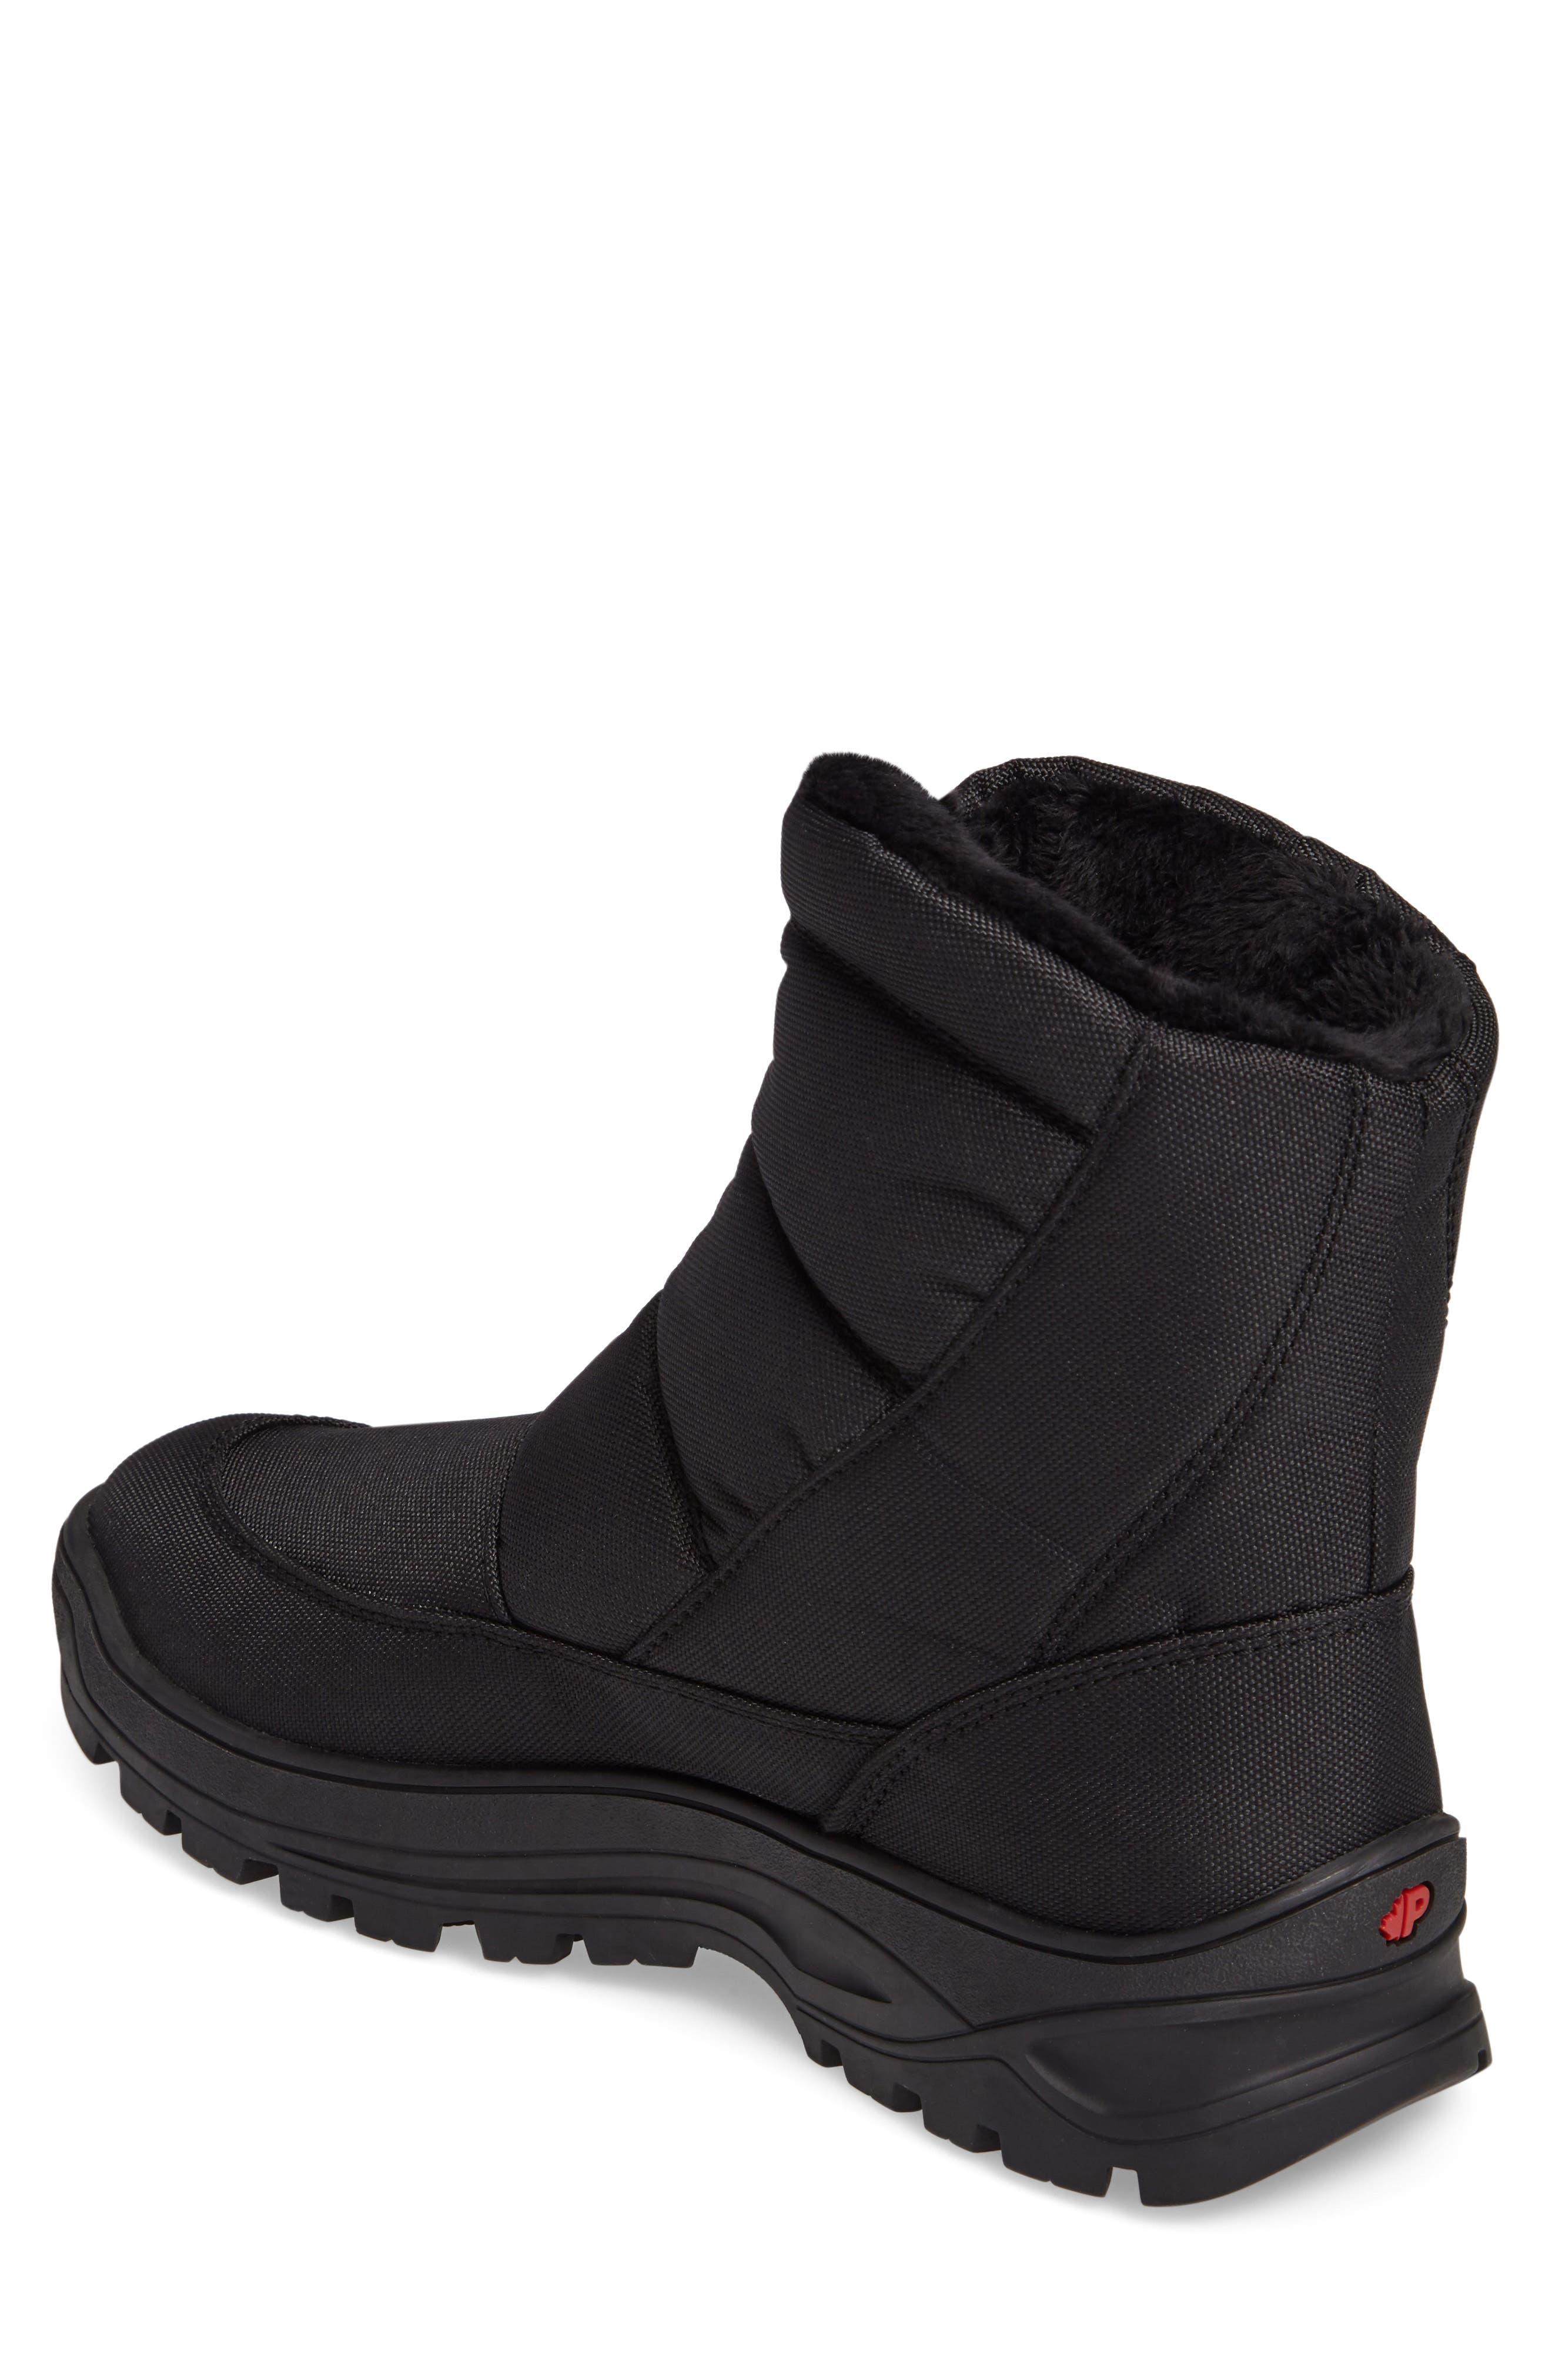 Icepack Boot with Faux Fur Lining,                             Alternate thumbnail 2, color,                             Black